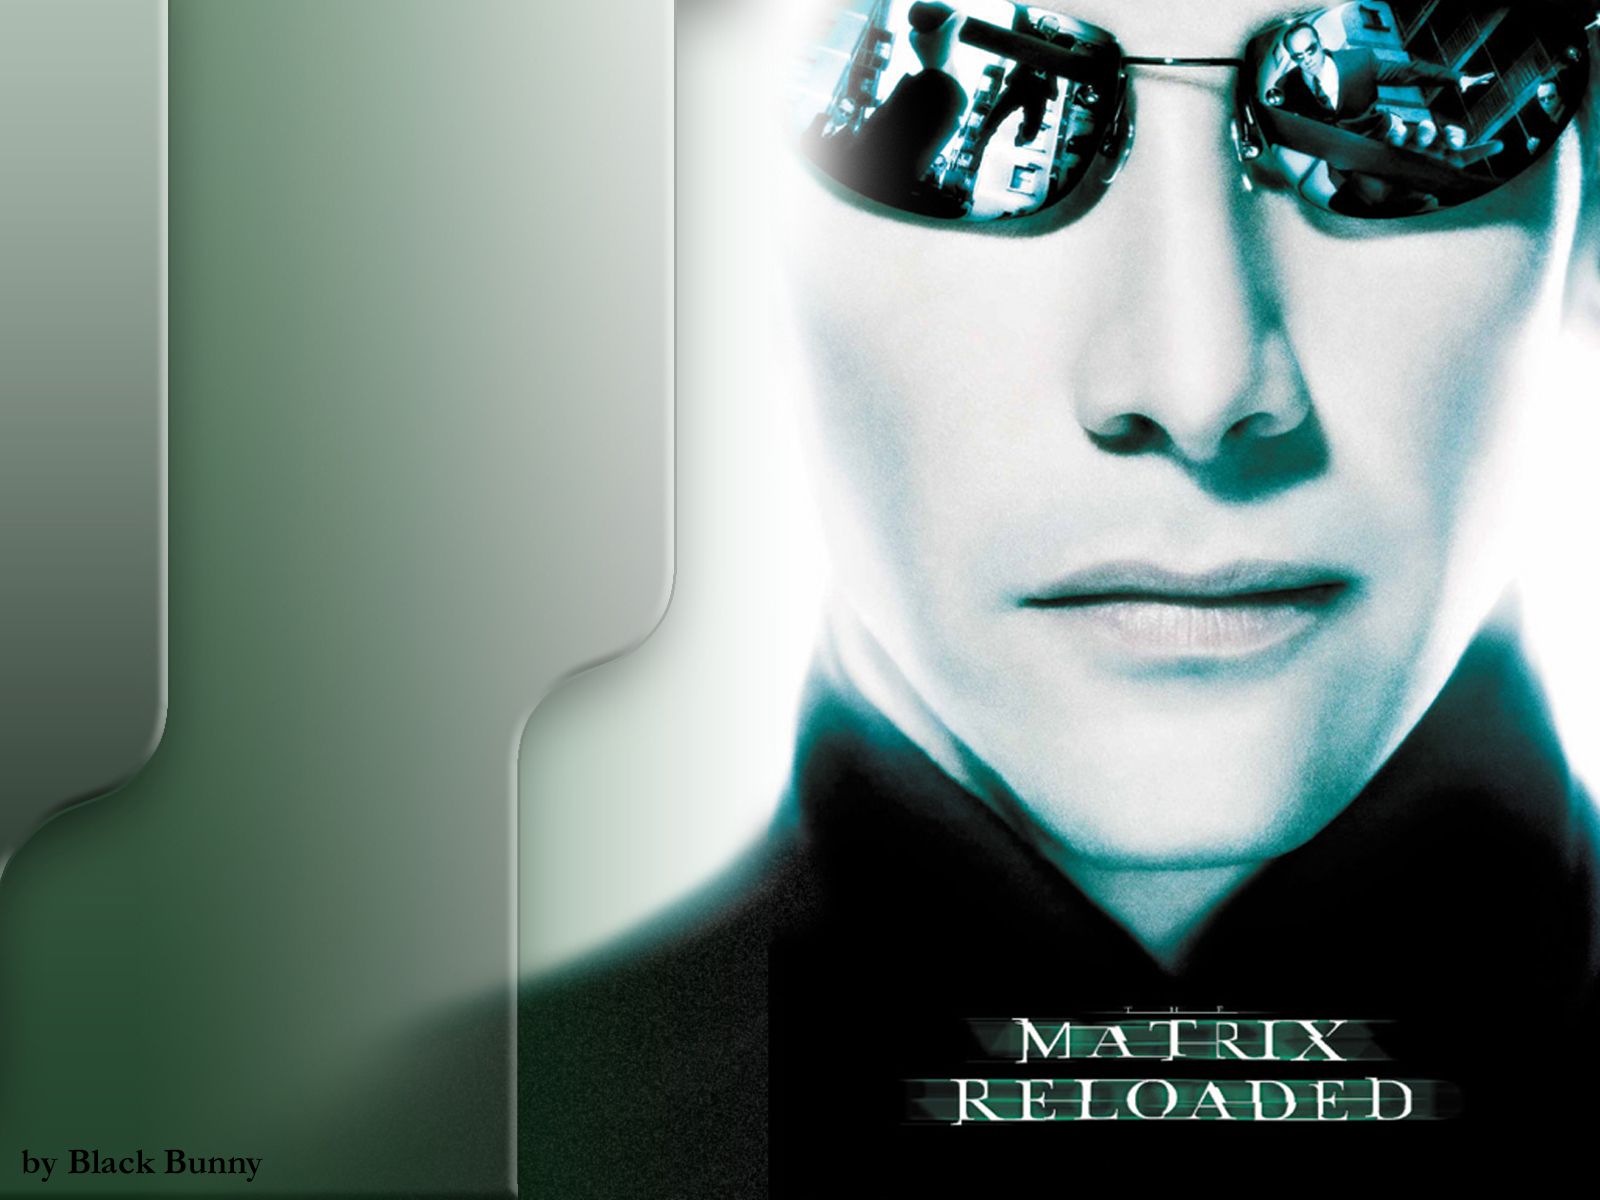 Neo Keanu Reeves Matrix Reloaded wallpaper | 1600x1200 ...